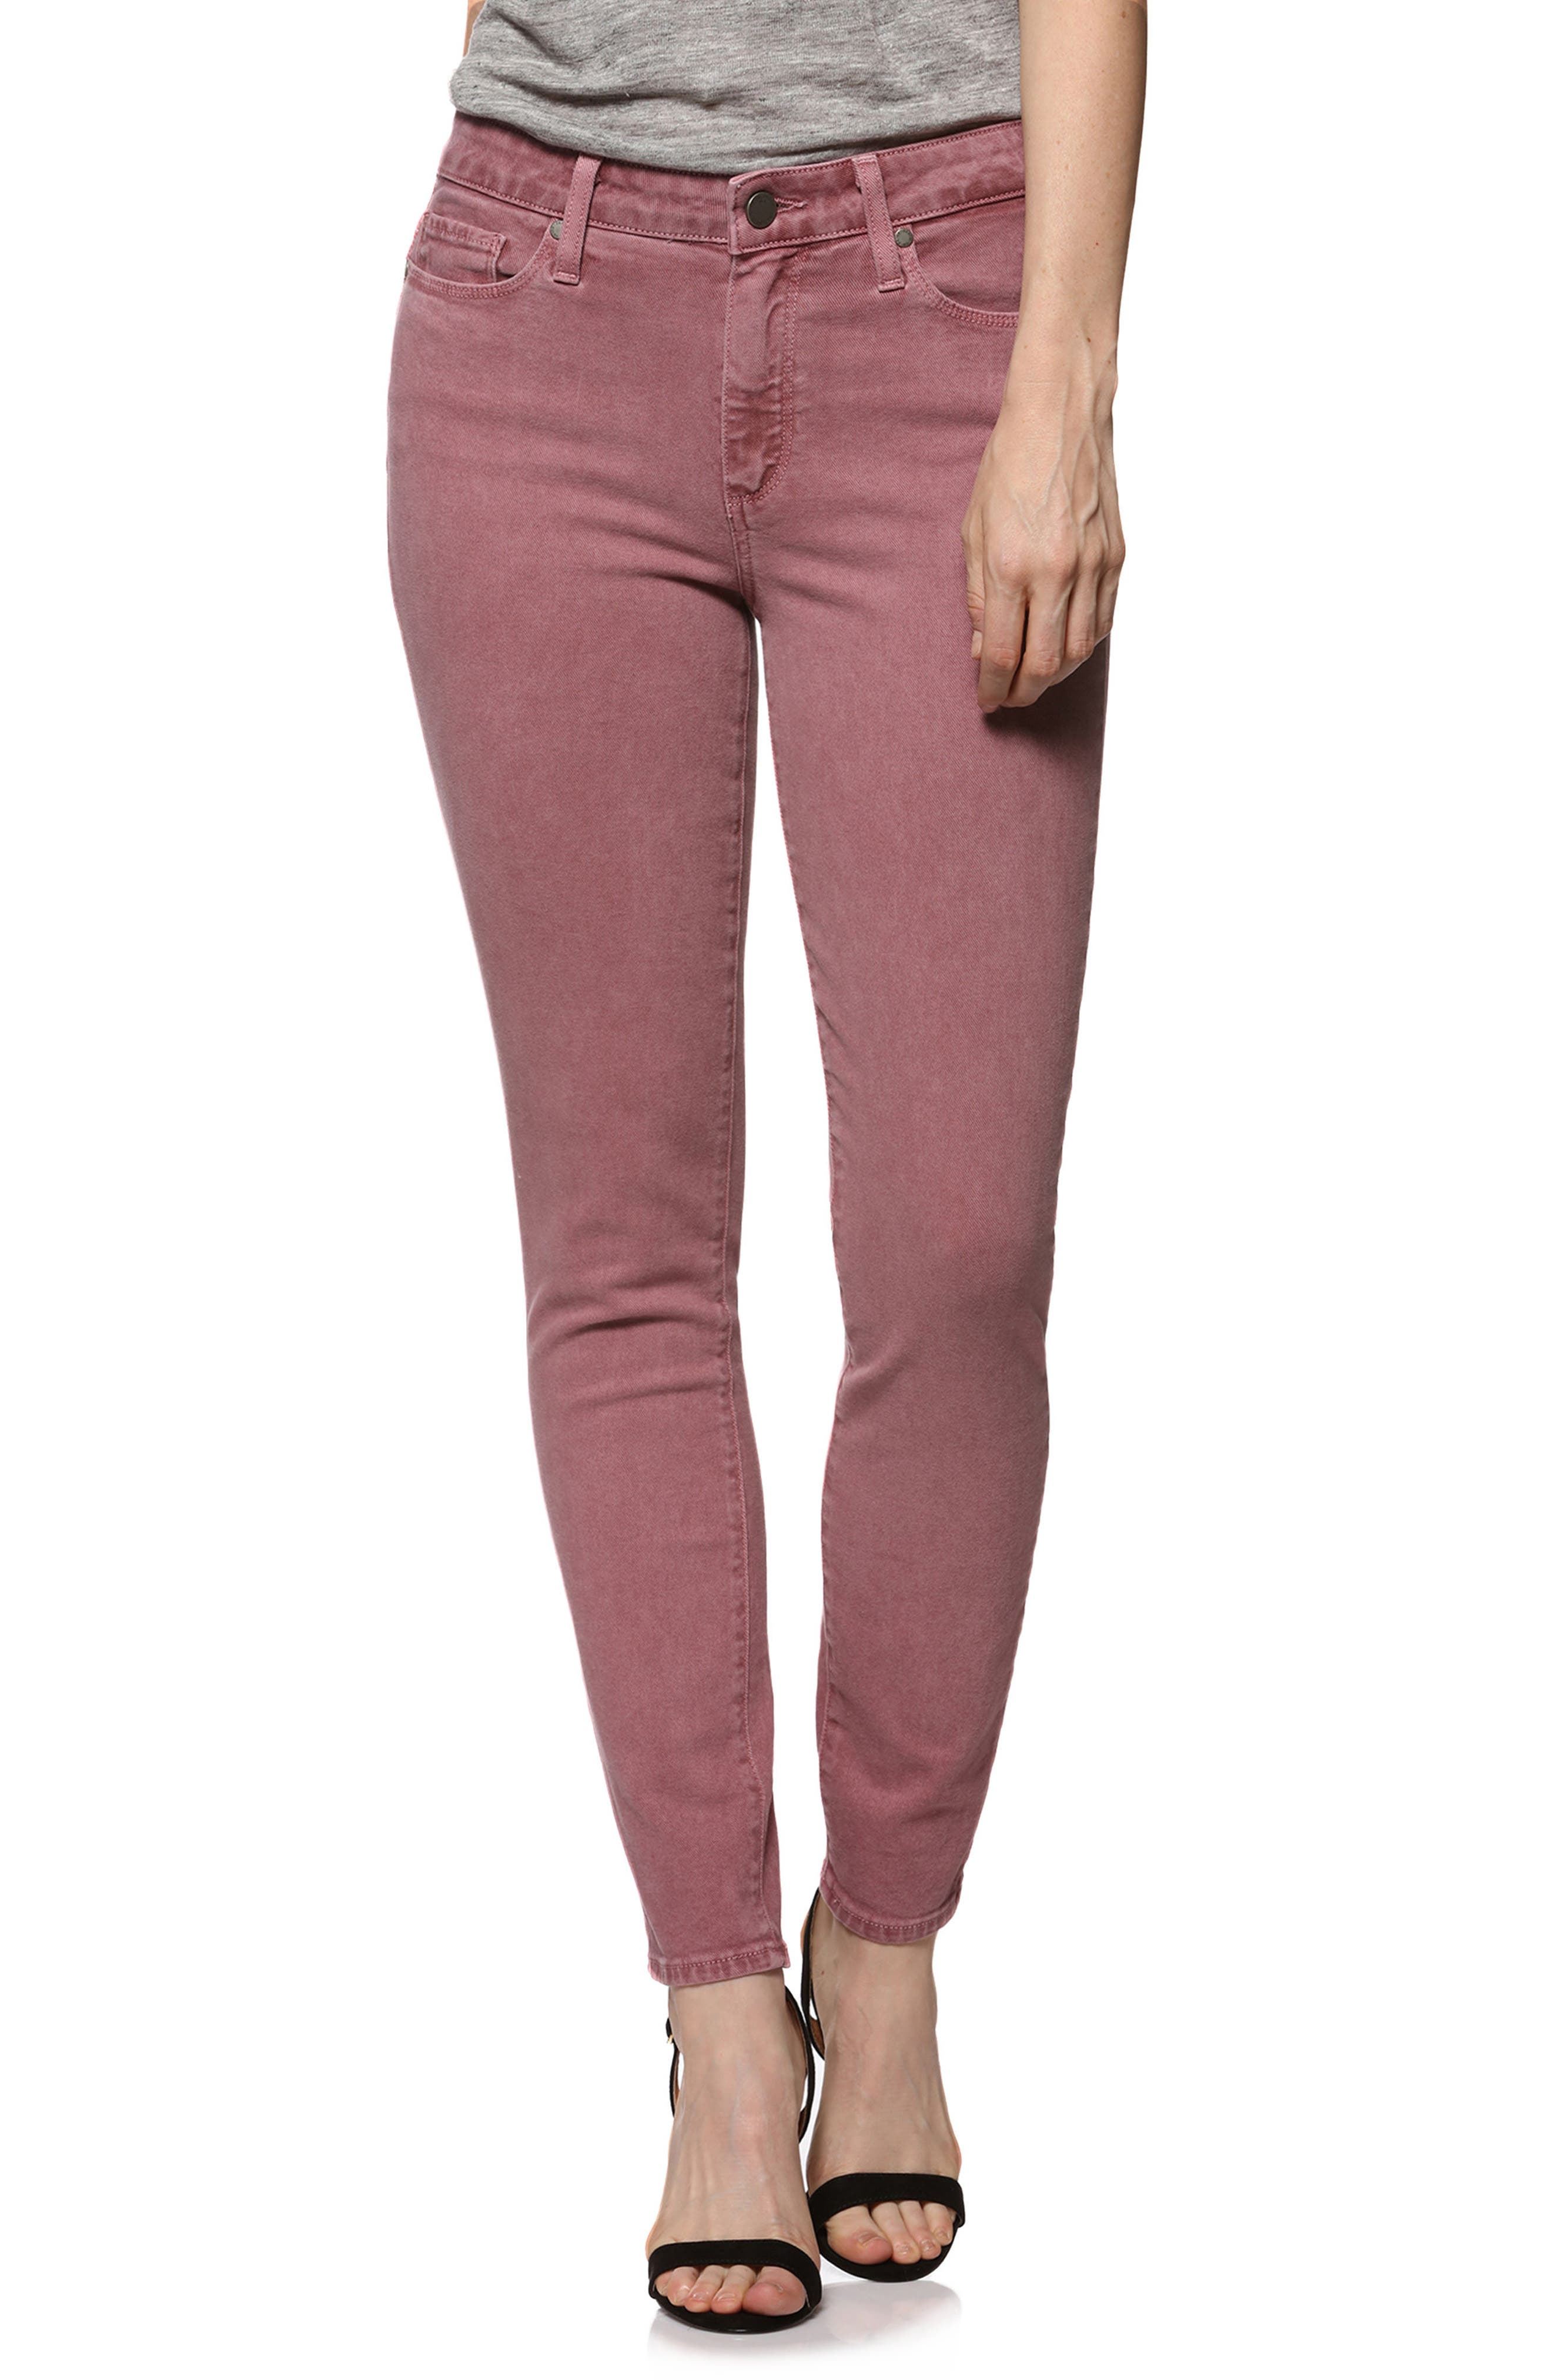 Hoxton High Waist Ankle Ultra Skinny Jeans,                         Main,                         color, Vintage Garden Rose